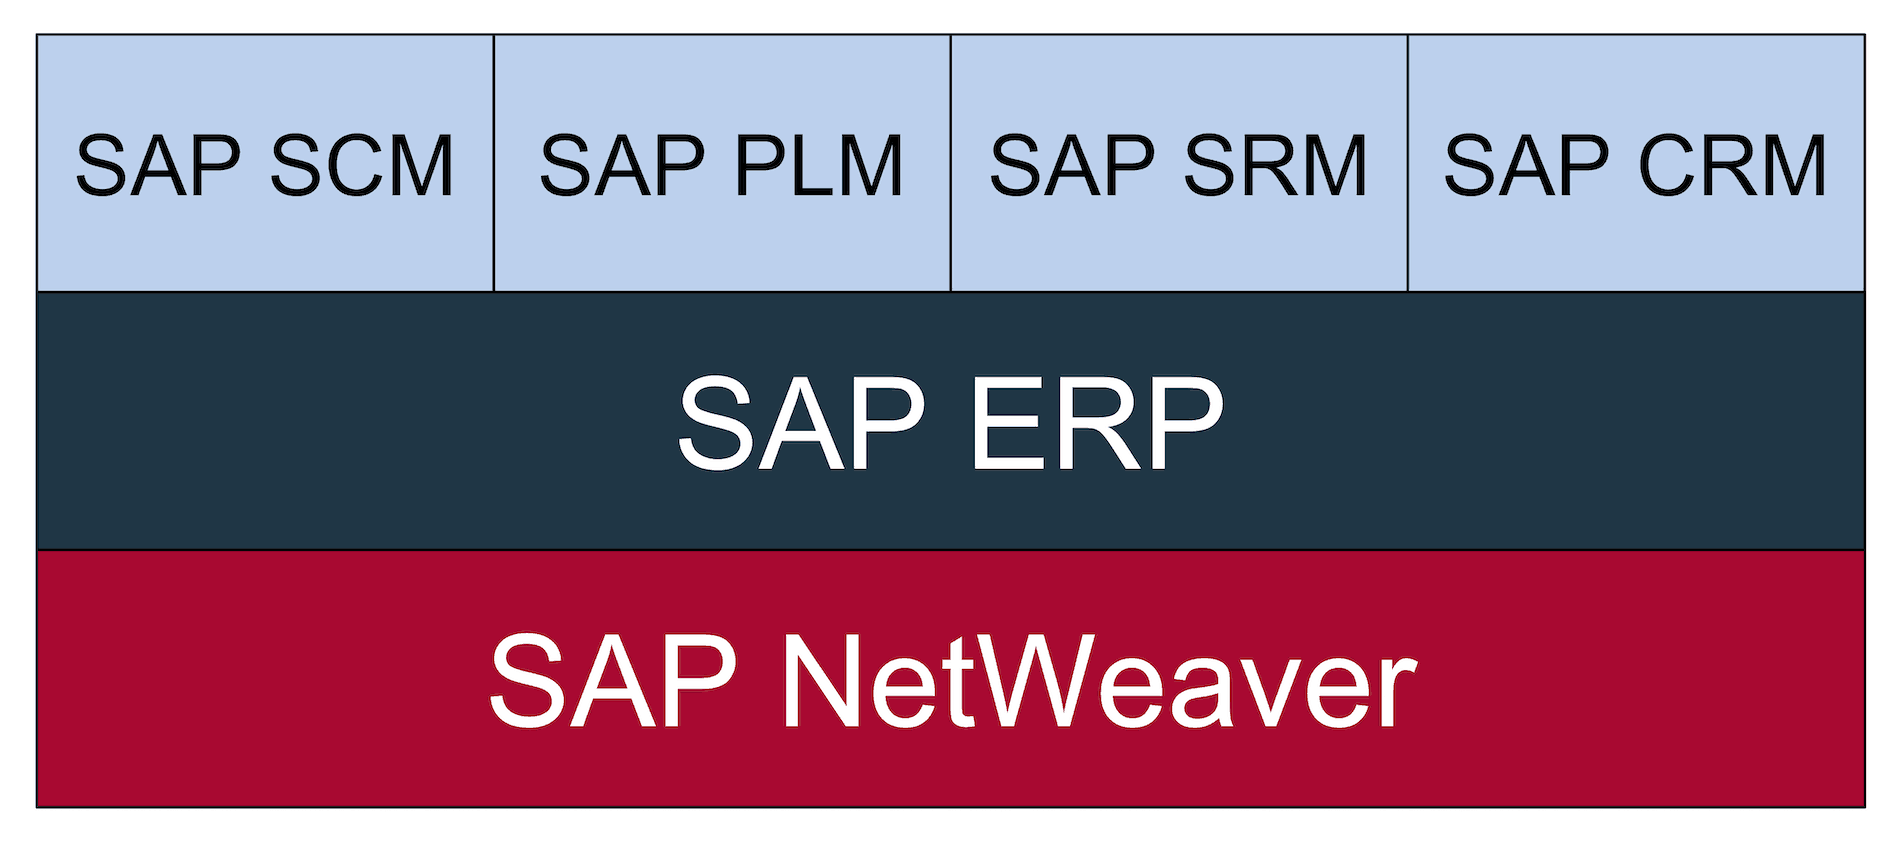 Structure of the SAP Business Suite